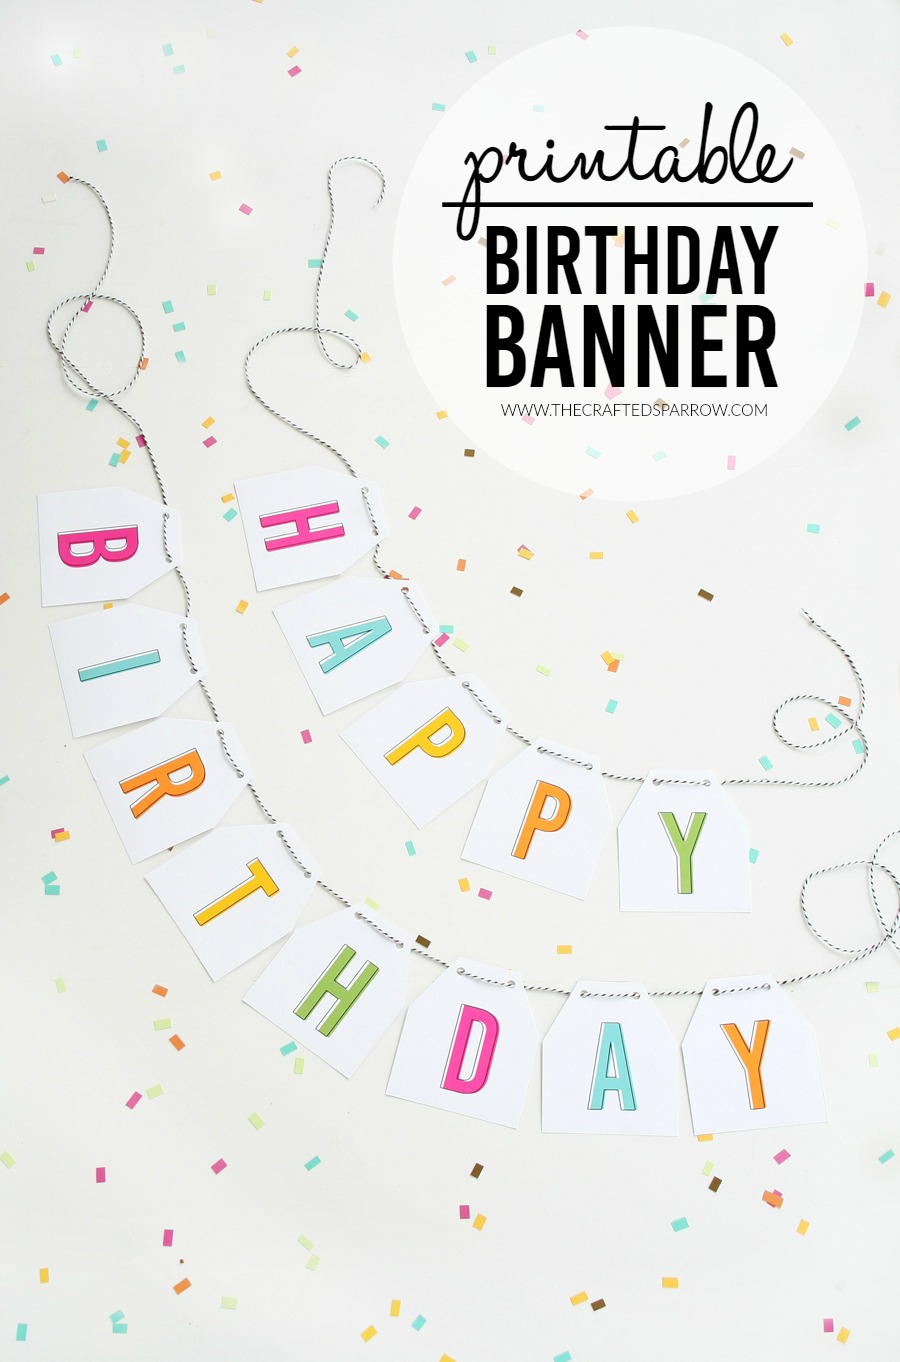 image relating to Free Birthday Banner Printable named No cost Printable Birthday Banner